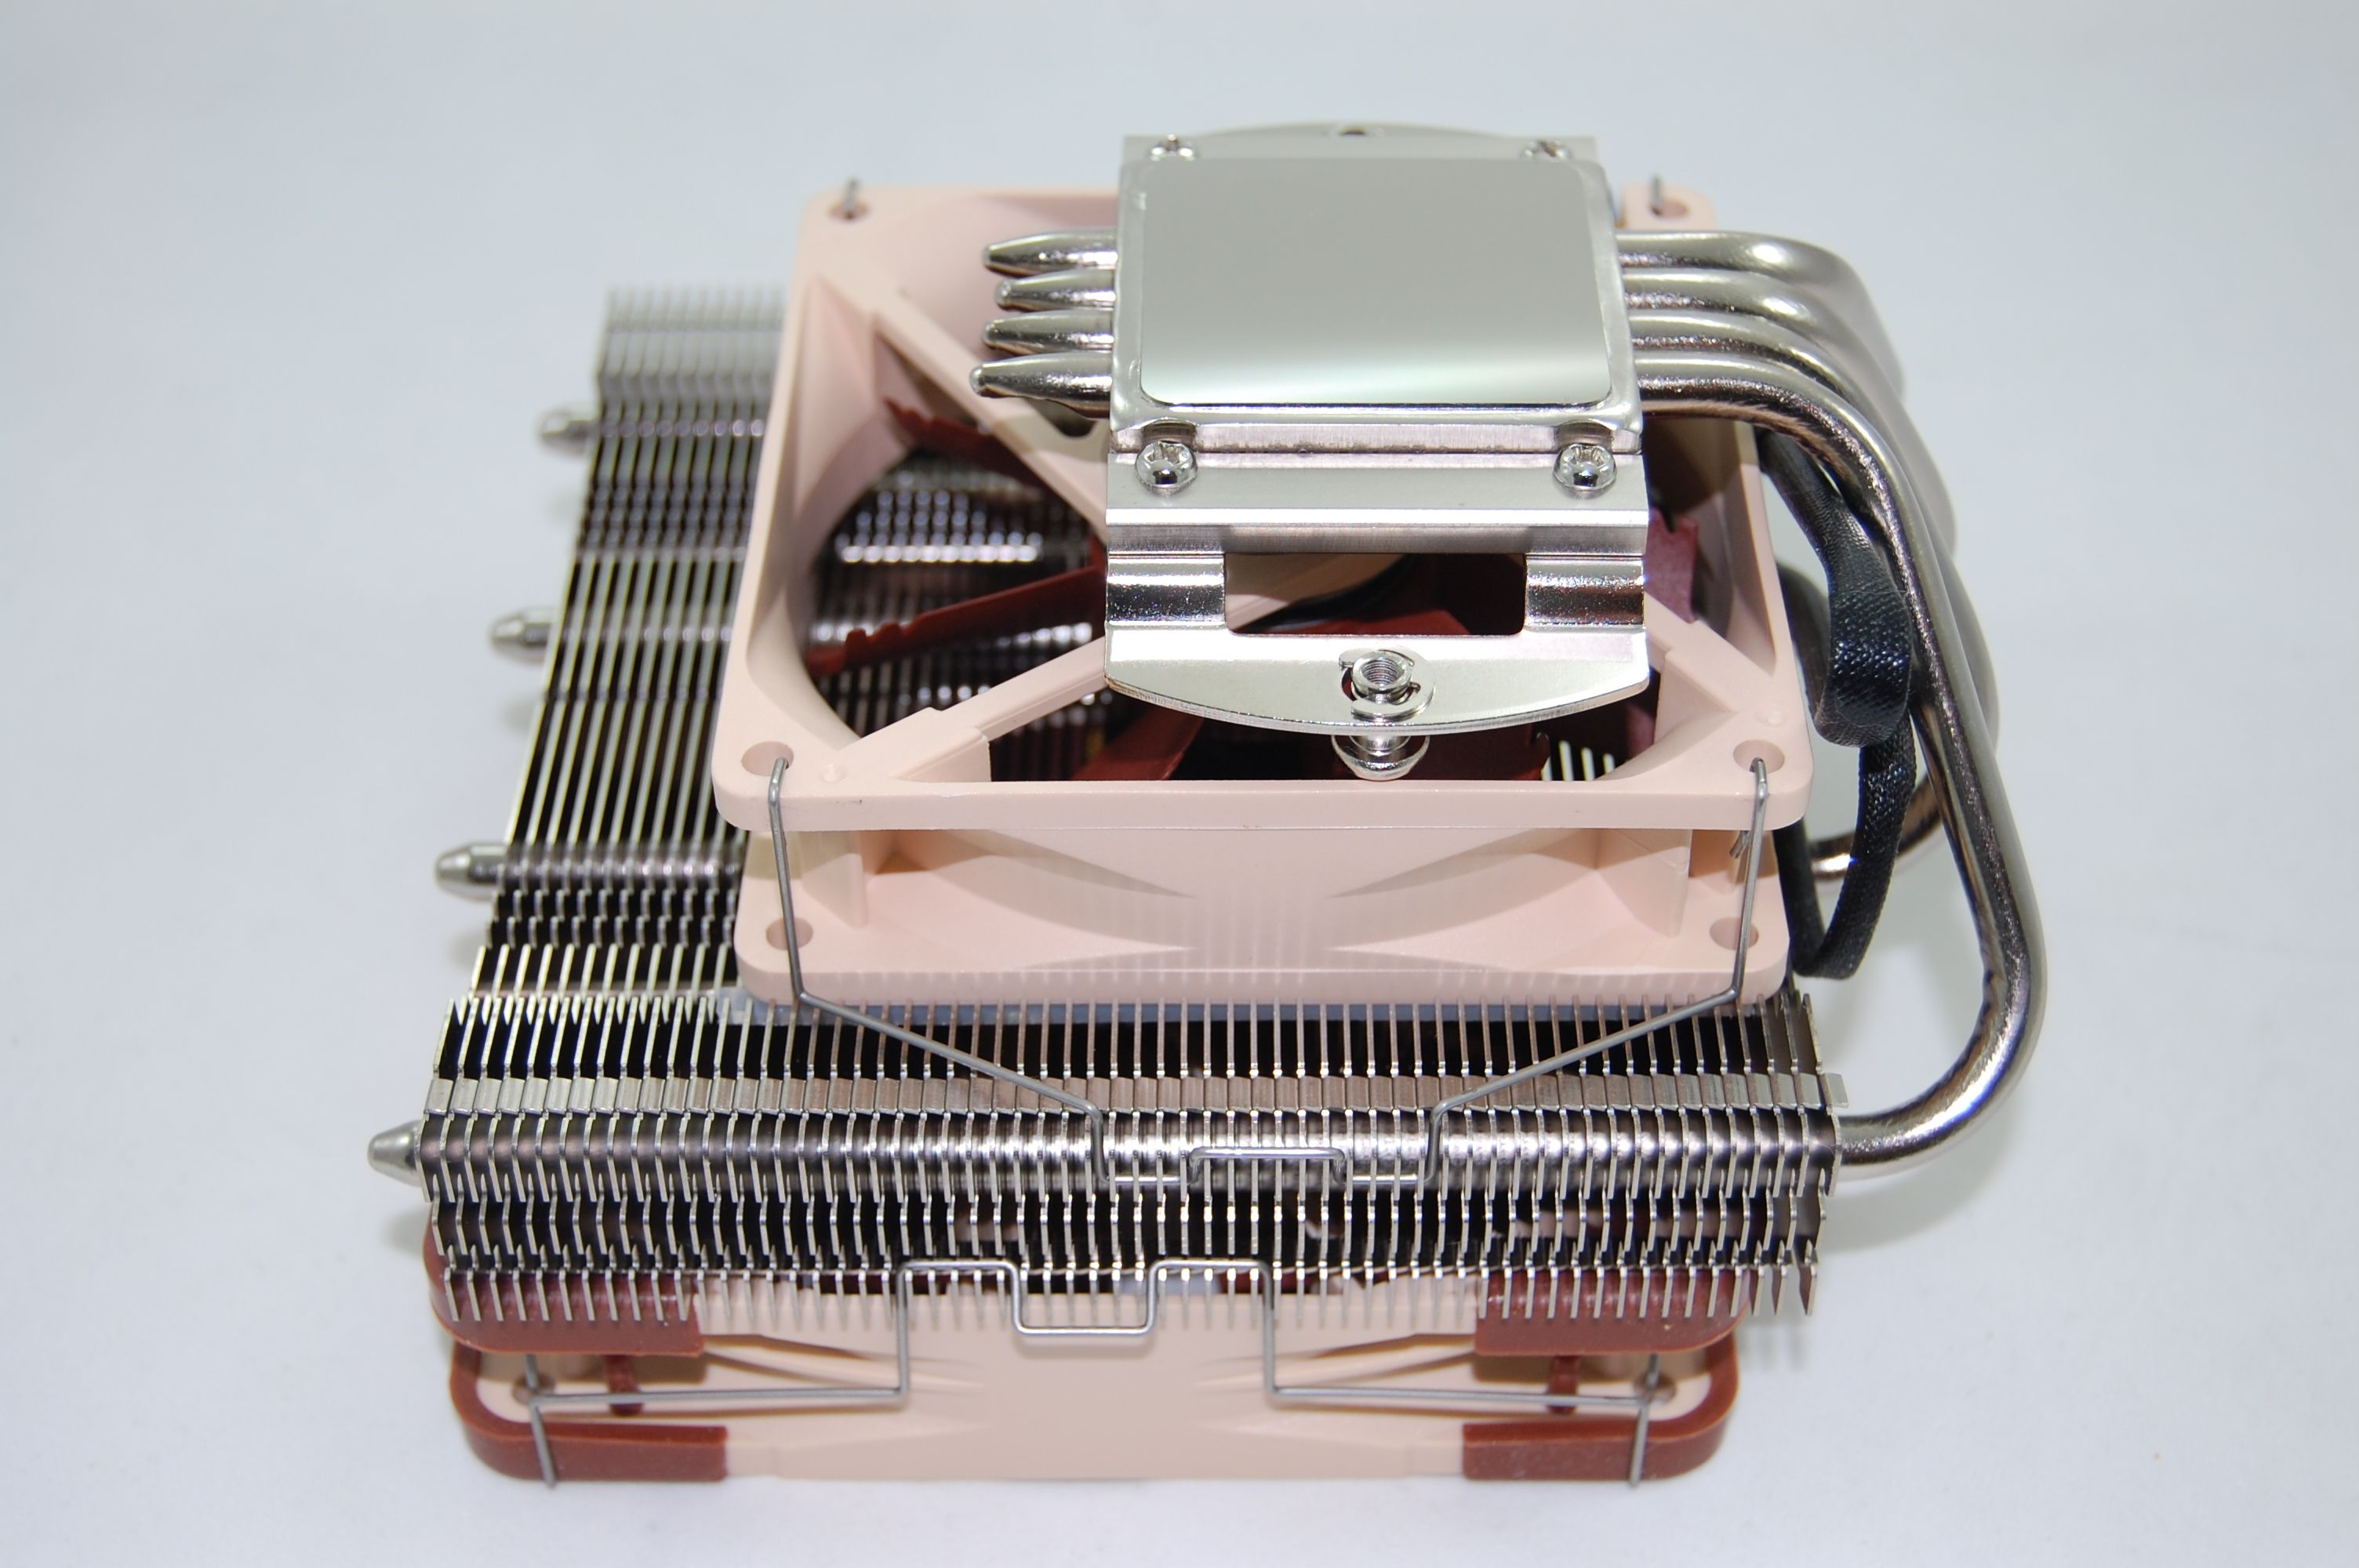 Noctua NH-L12 Bottom